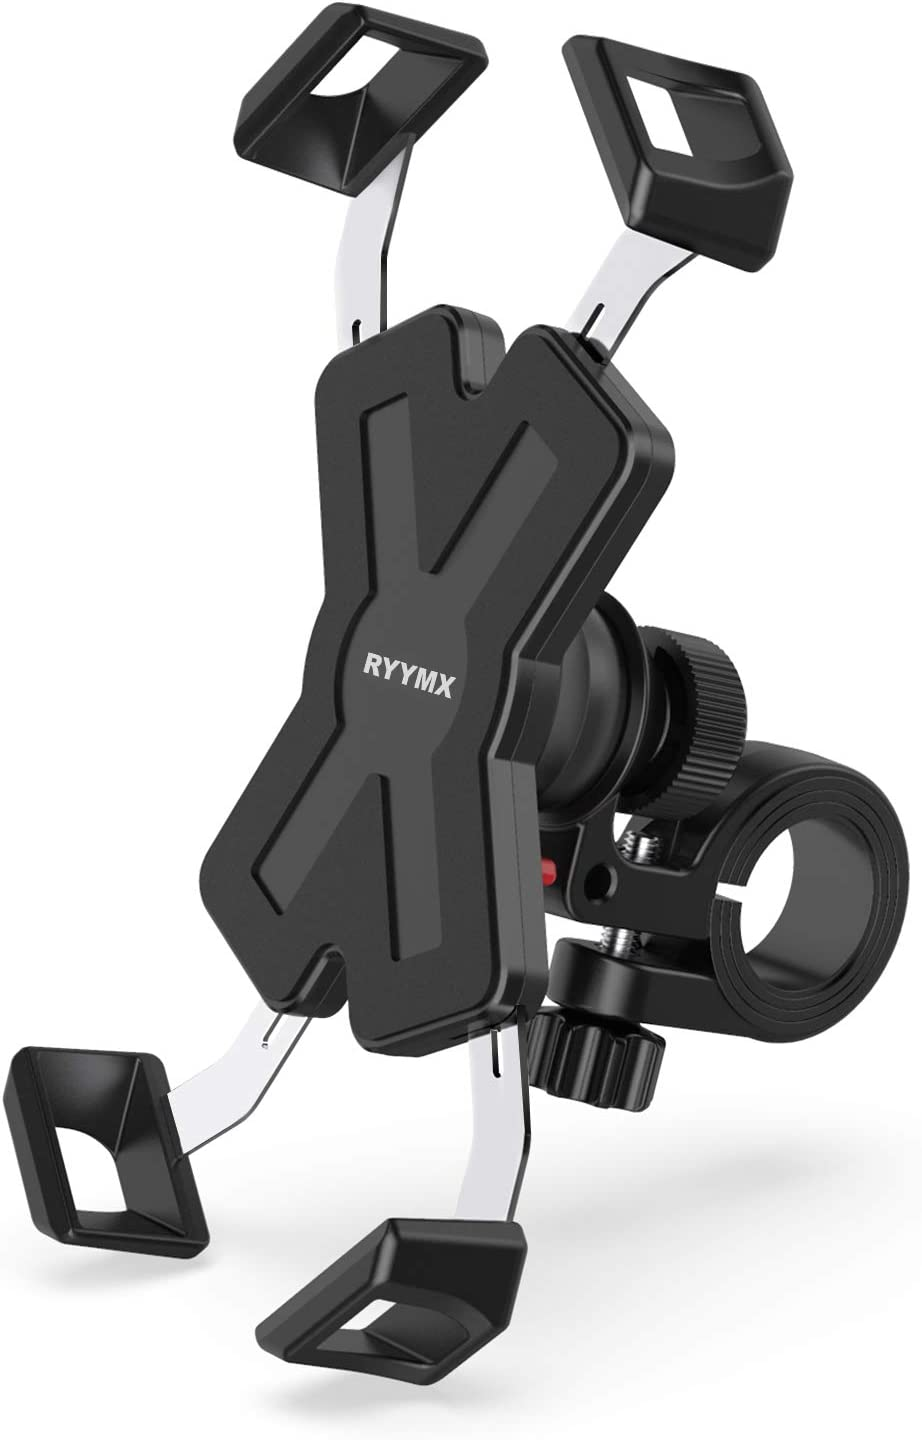 Amazon.com: Bike Phone Mount - RYYMX Bicycle Phone Holder : 360 ...